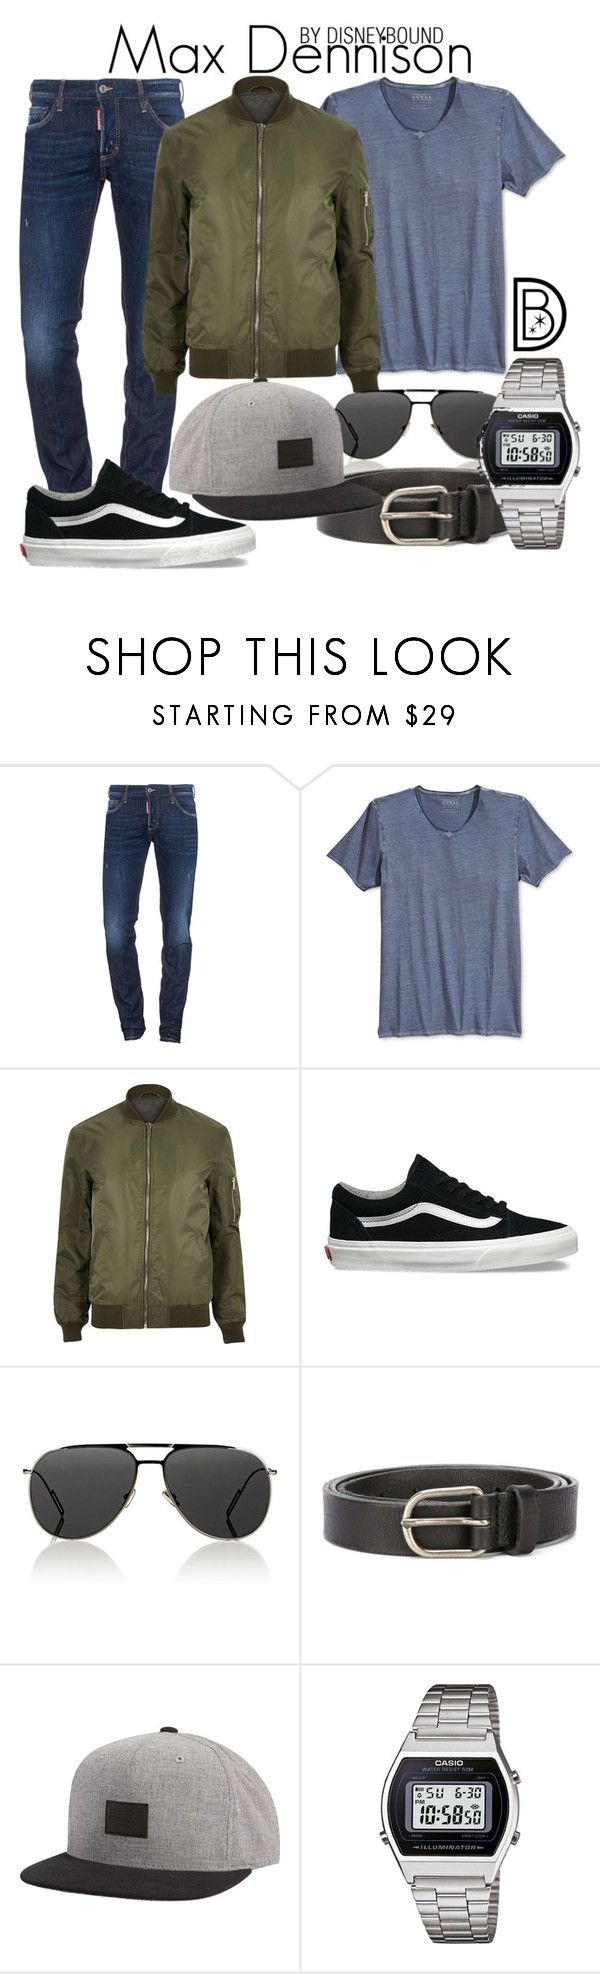 Max Dennison by leslieakay on Polyvore featuring GUESS, Dsquared2, River Island, Casio, Billabong, Vans, Dior Homme, men's fashion, menswear and Halloween